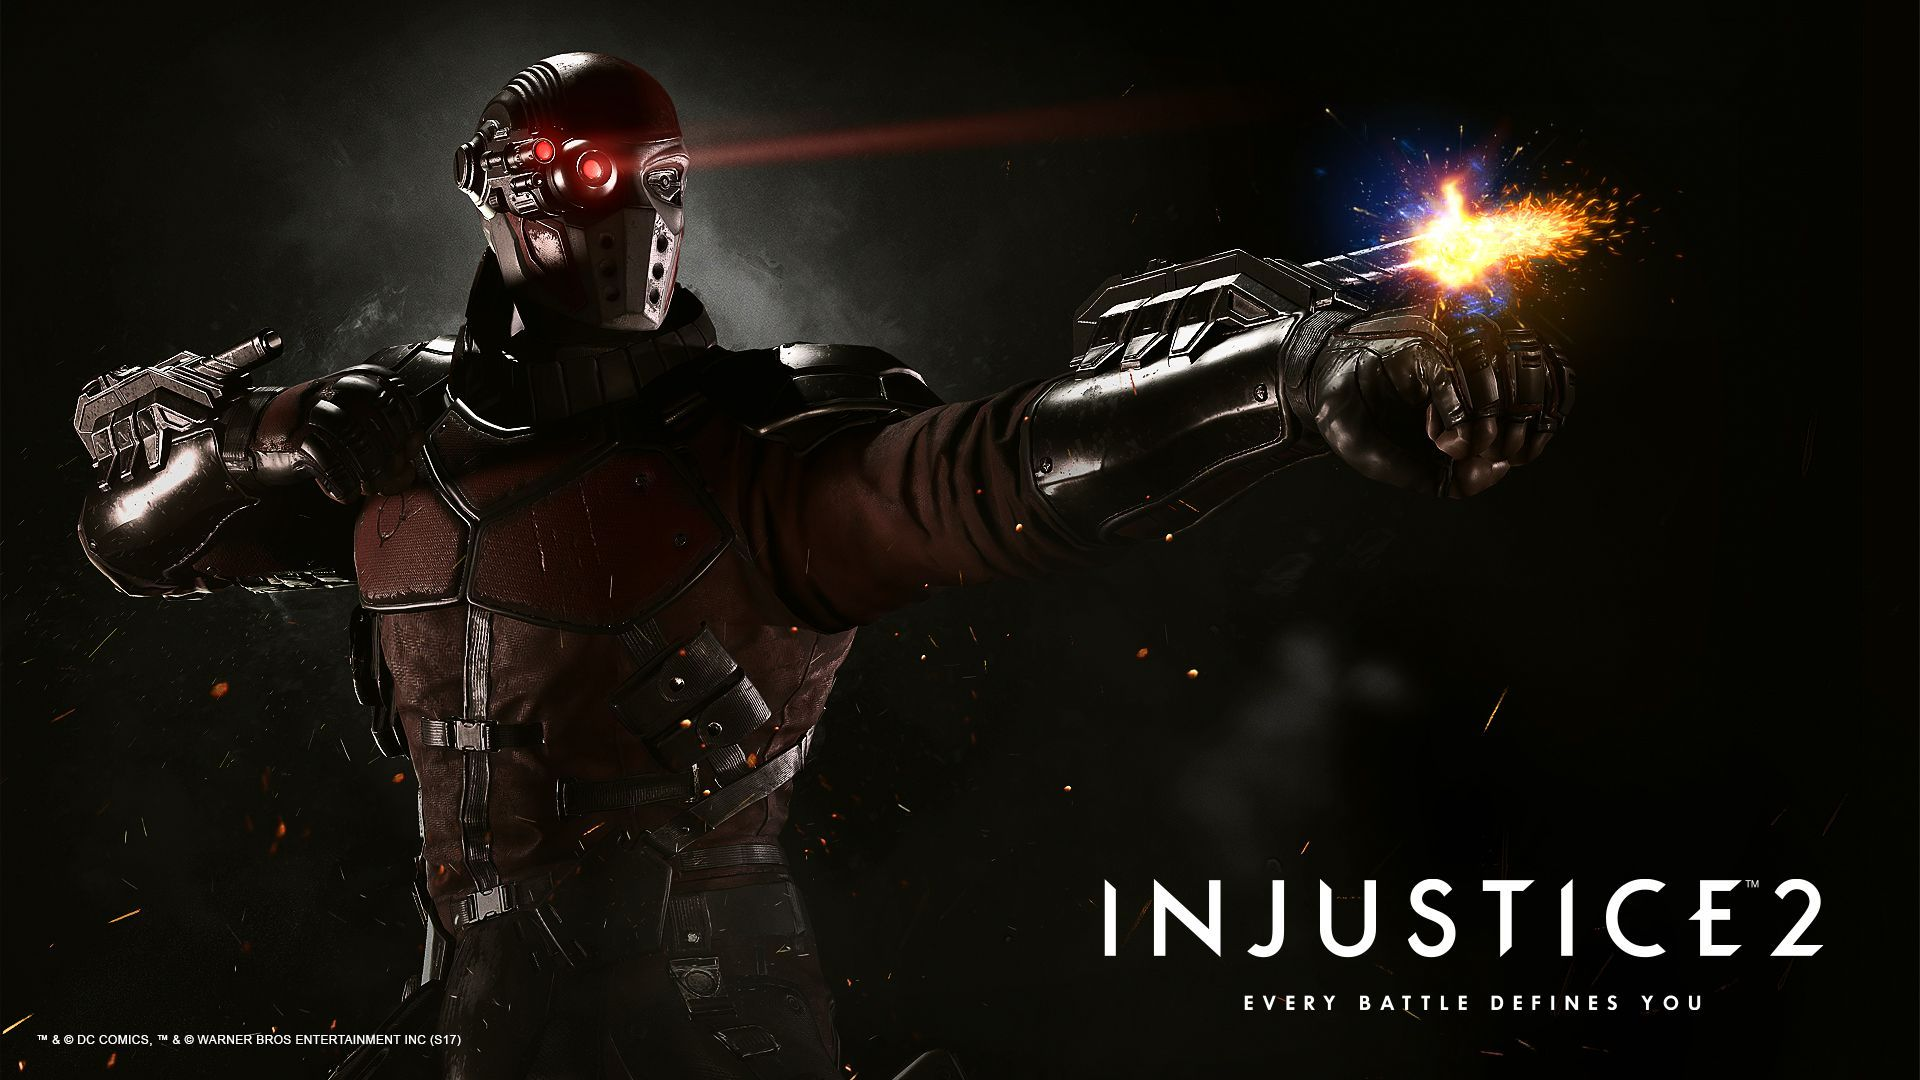 Pin by fortex on injustice 2 characters injustice 2 game injustice 2 injustice 2 characters - Dc characters wallpaper hd ...